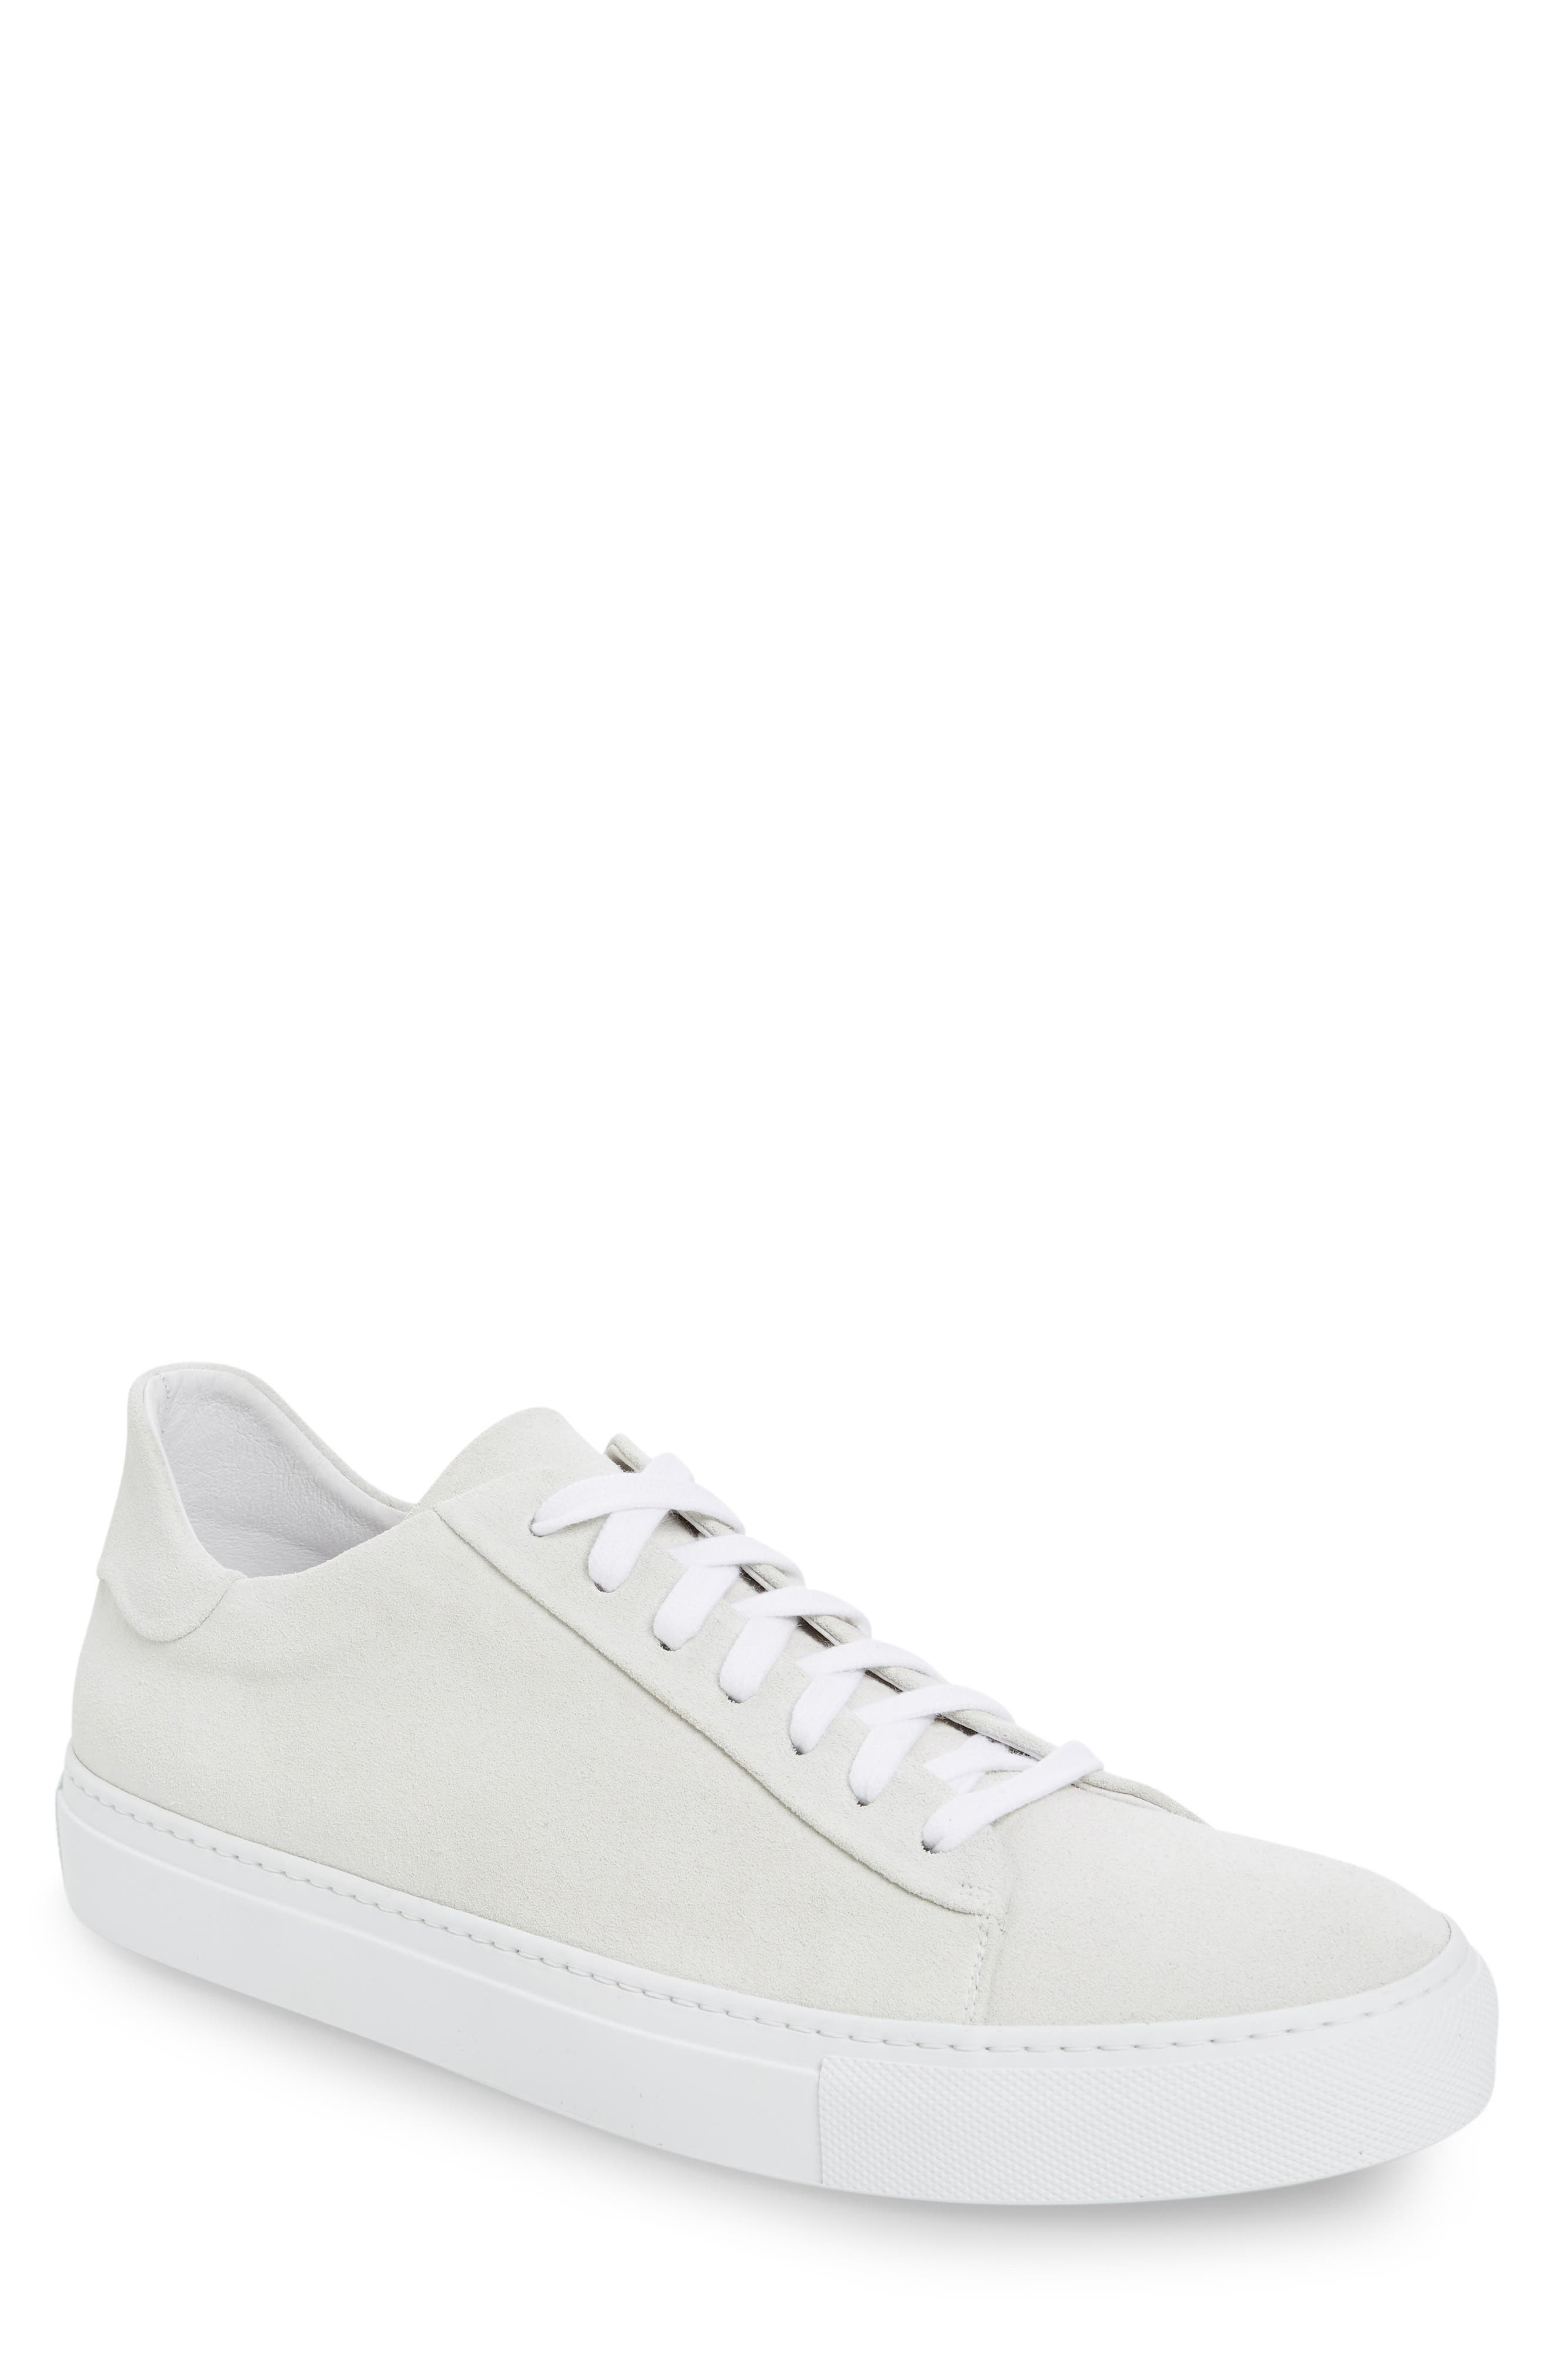 Court Sneaker,                         Main,                         color, White Suede